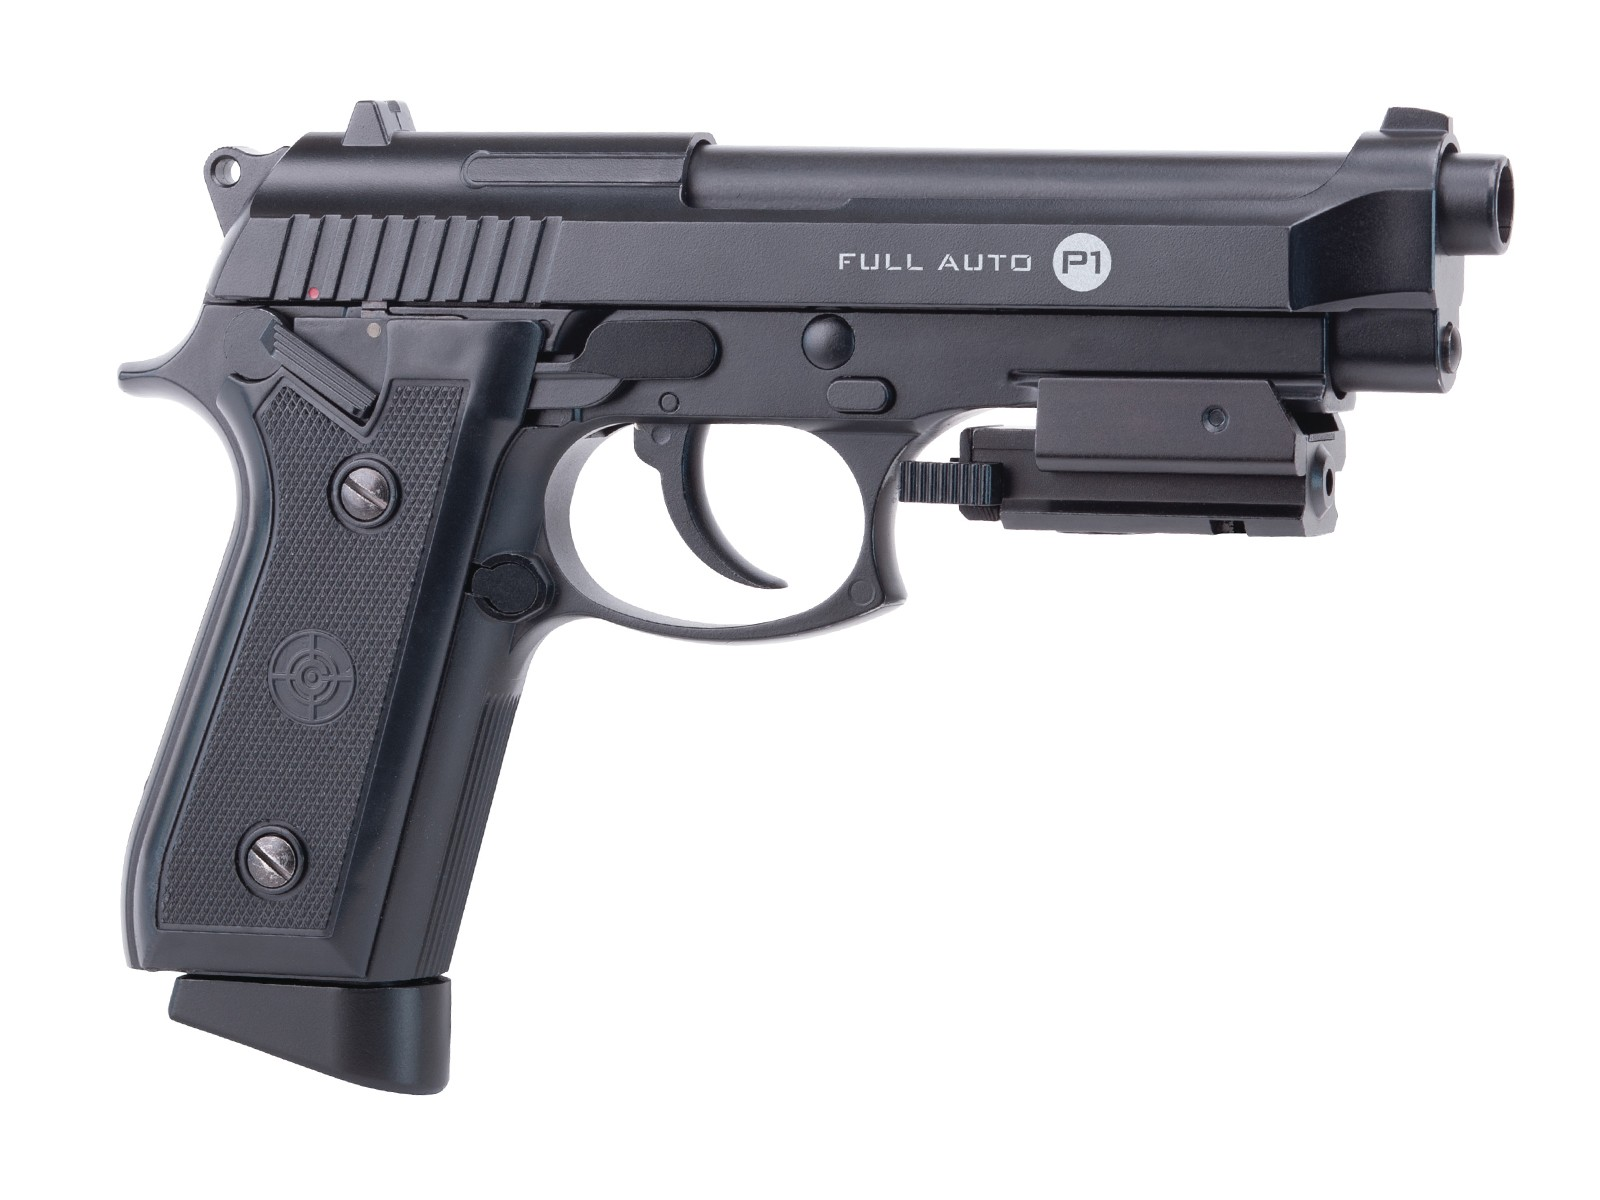 Crosman P1 Full Auto Blowback CO2 BB Pistol with Laser 0.177